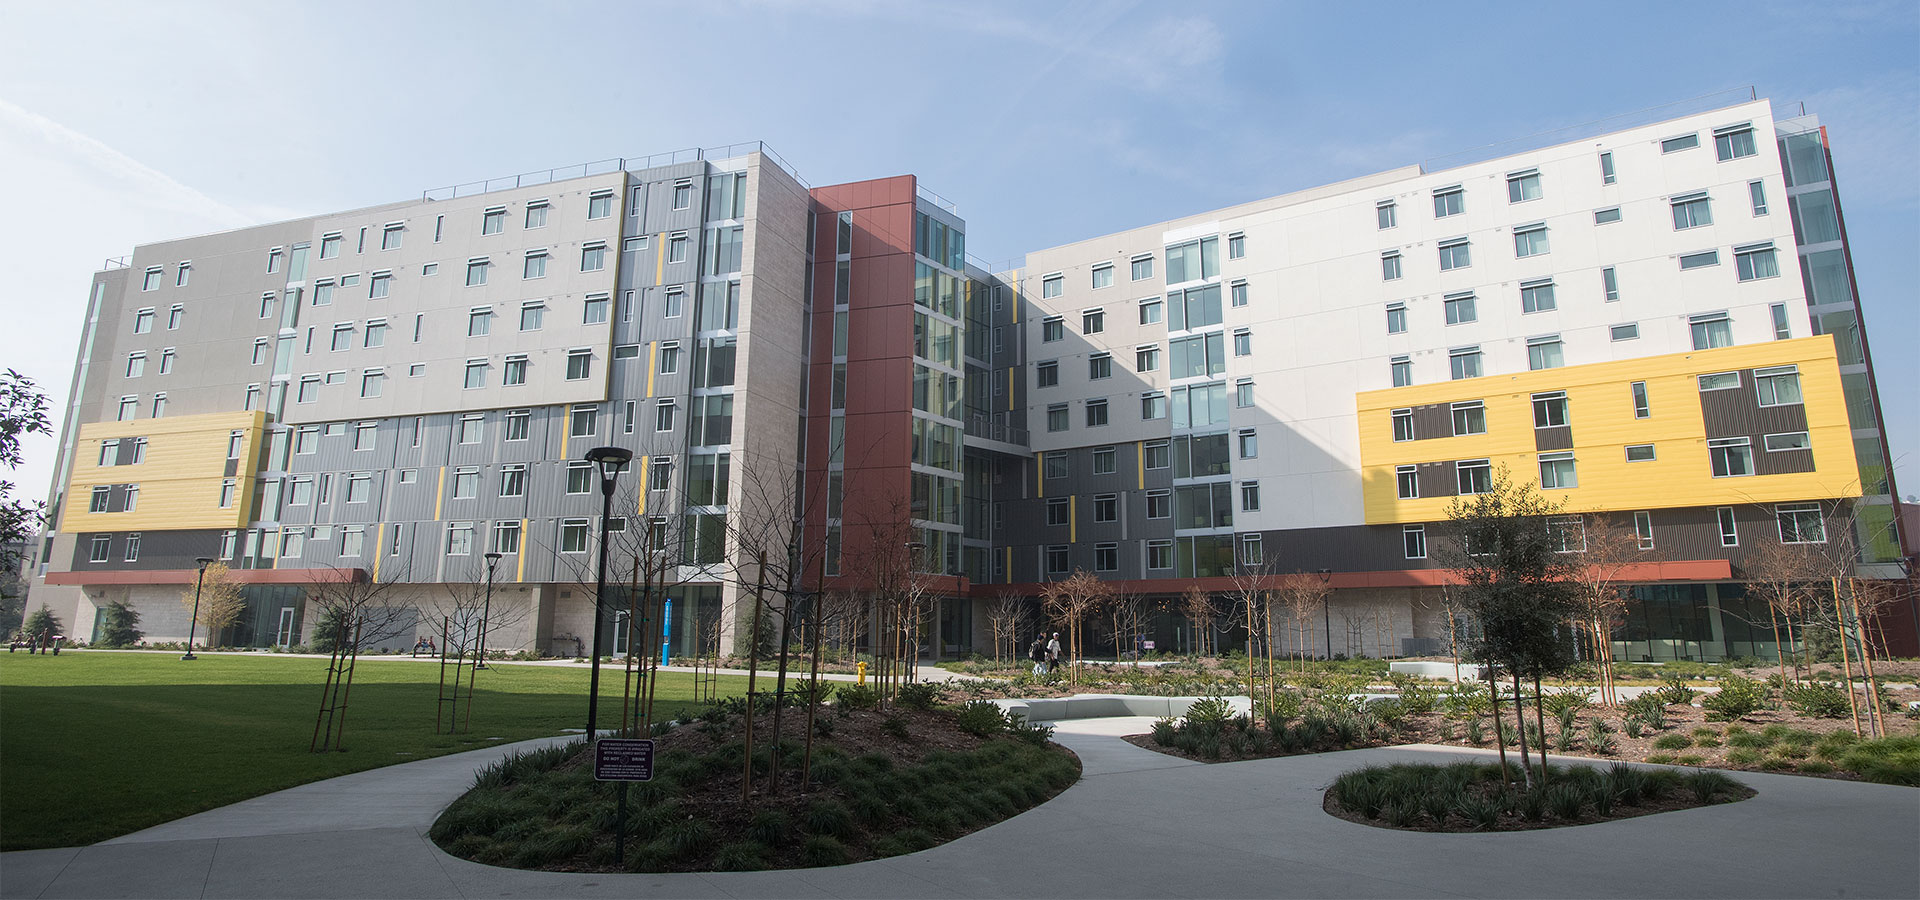 The New Dorms on campus